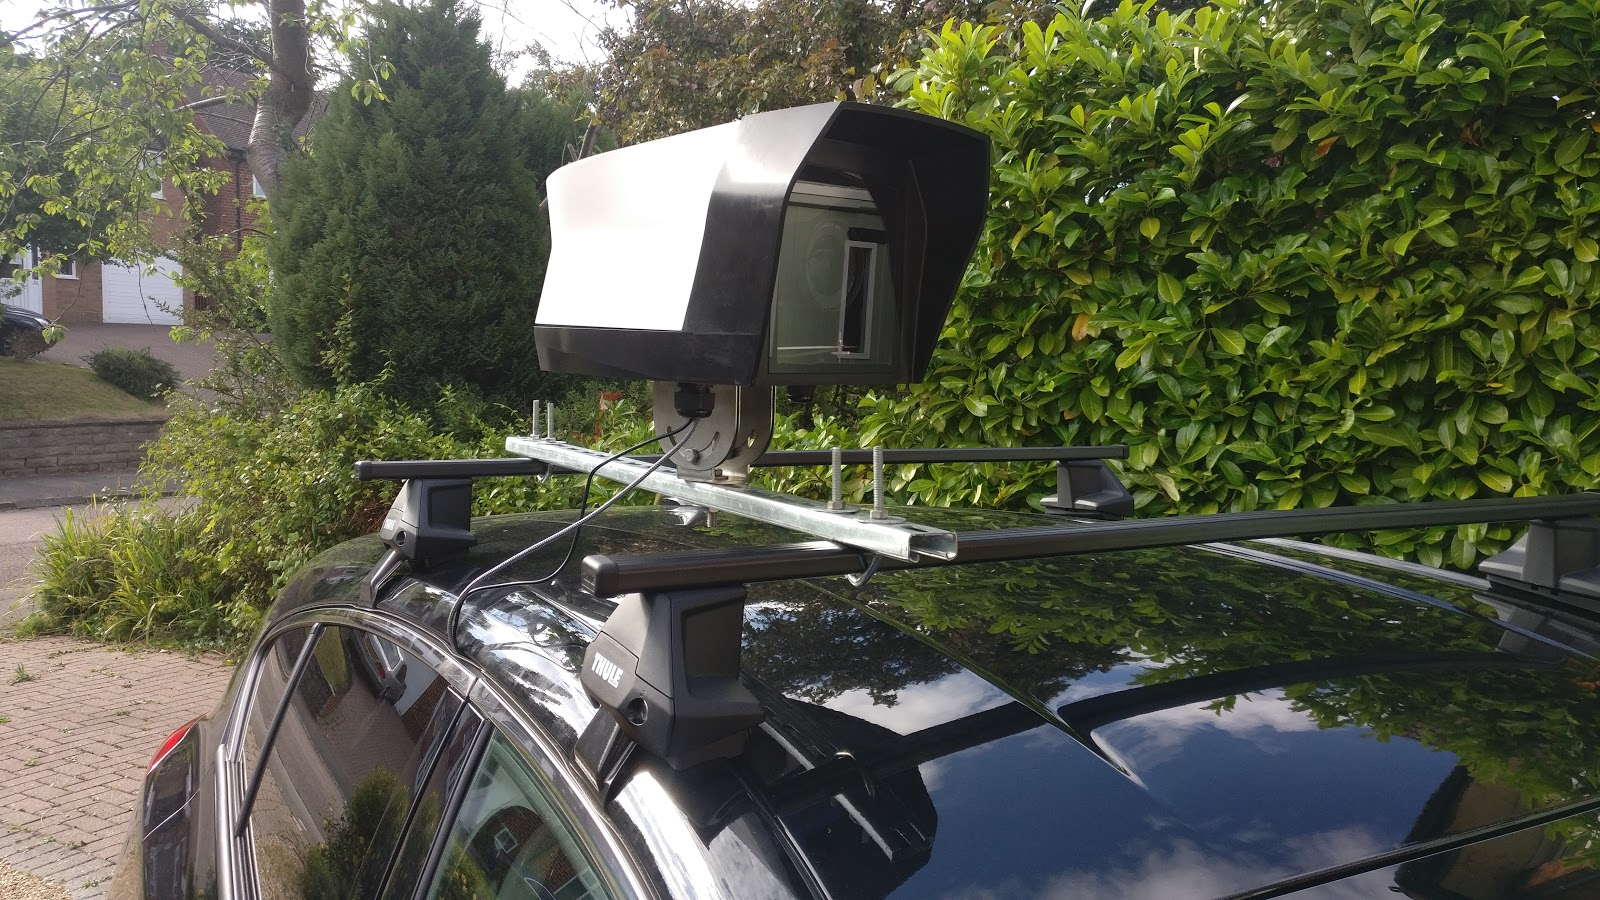 Camera system mounted on the car's roof rack